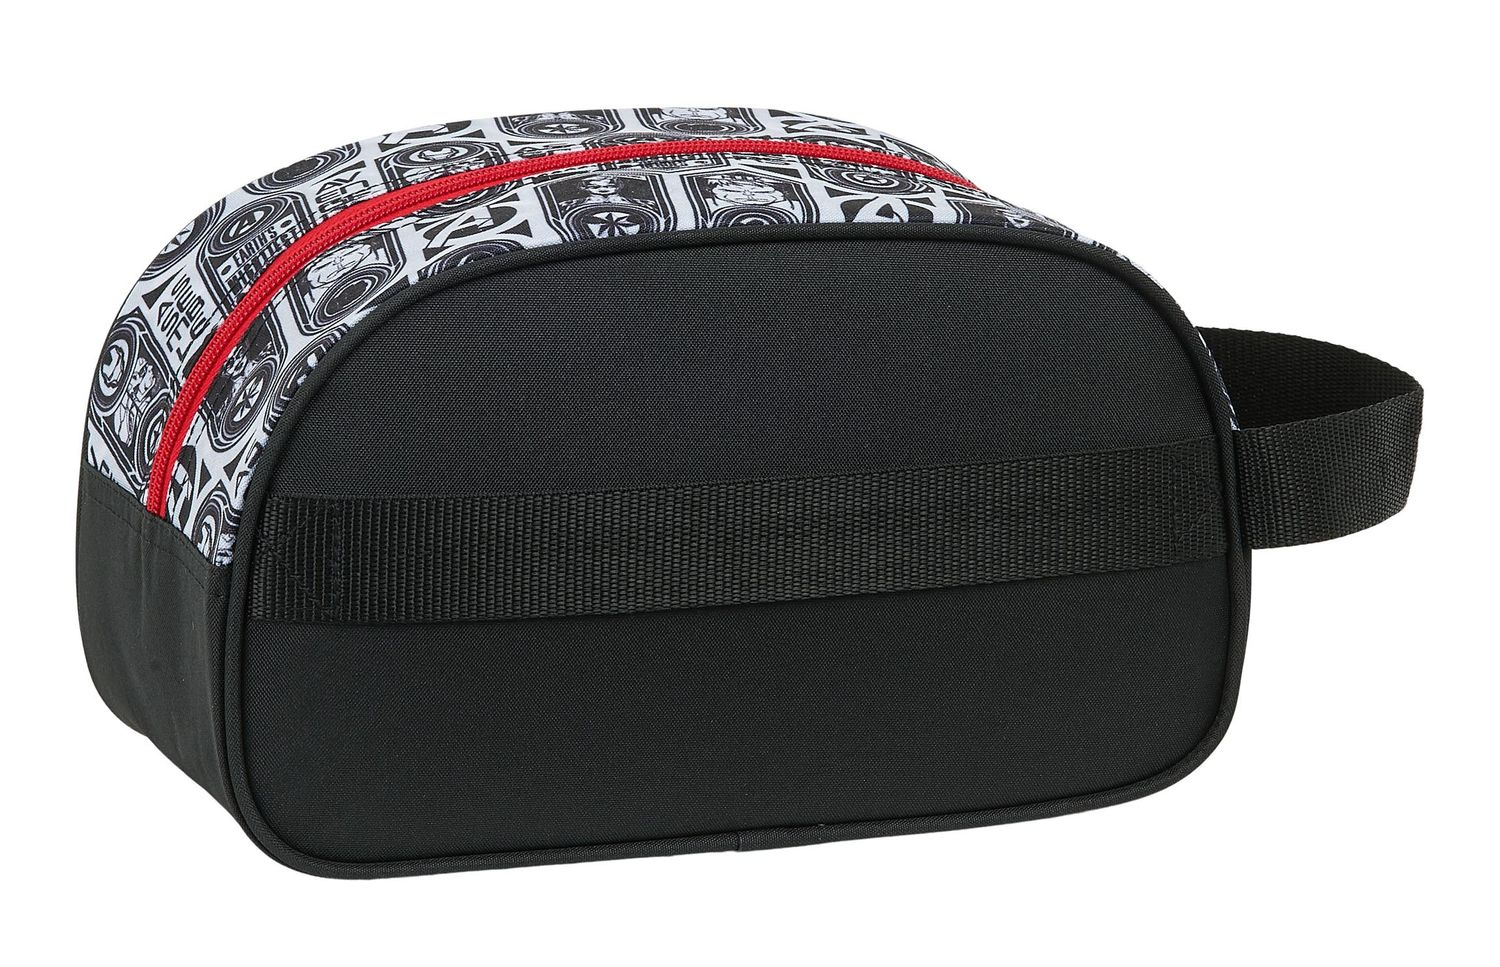 Marvel AVENGERS HEROES Toiletry Travel Bag – image 2